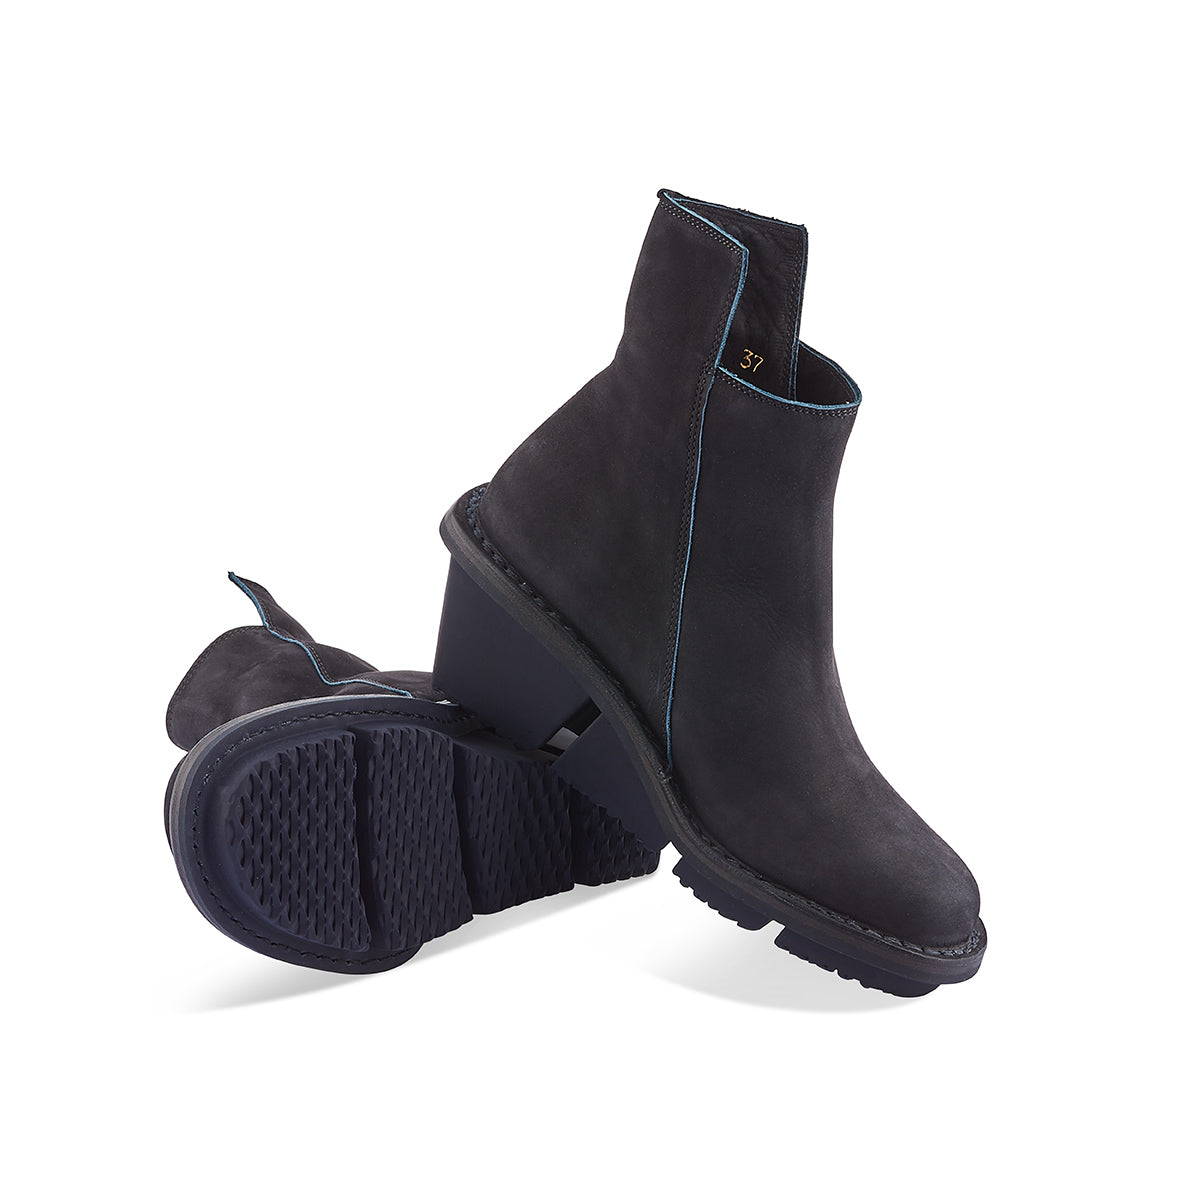 A modern classic, Trippen's Proper wedge boot returns this season in a deep navy nubuck upper. The angular zip and slightly higher back create a beautiful line through the leg, and the sturdy yet lightweight 'gritt' sole provides extra height and the right amount of flexibility underfoot.